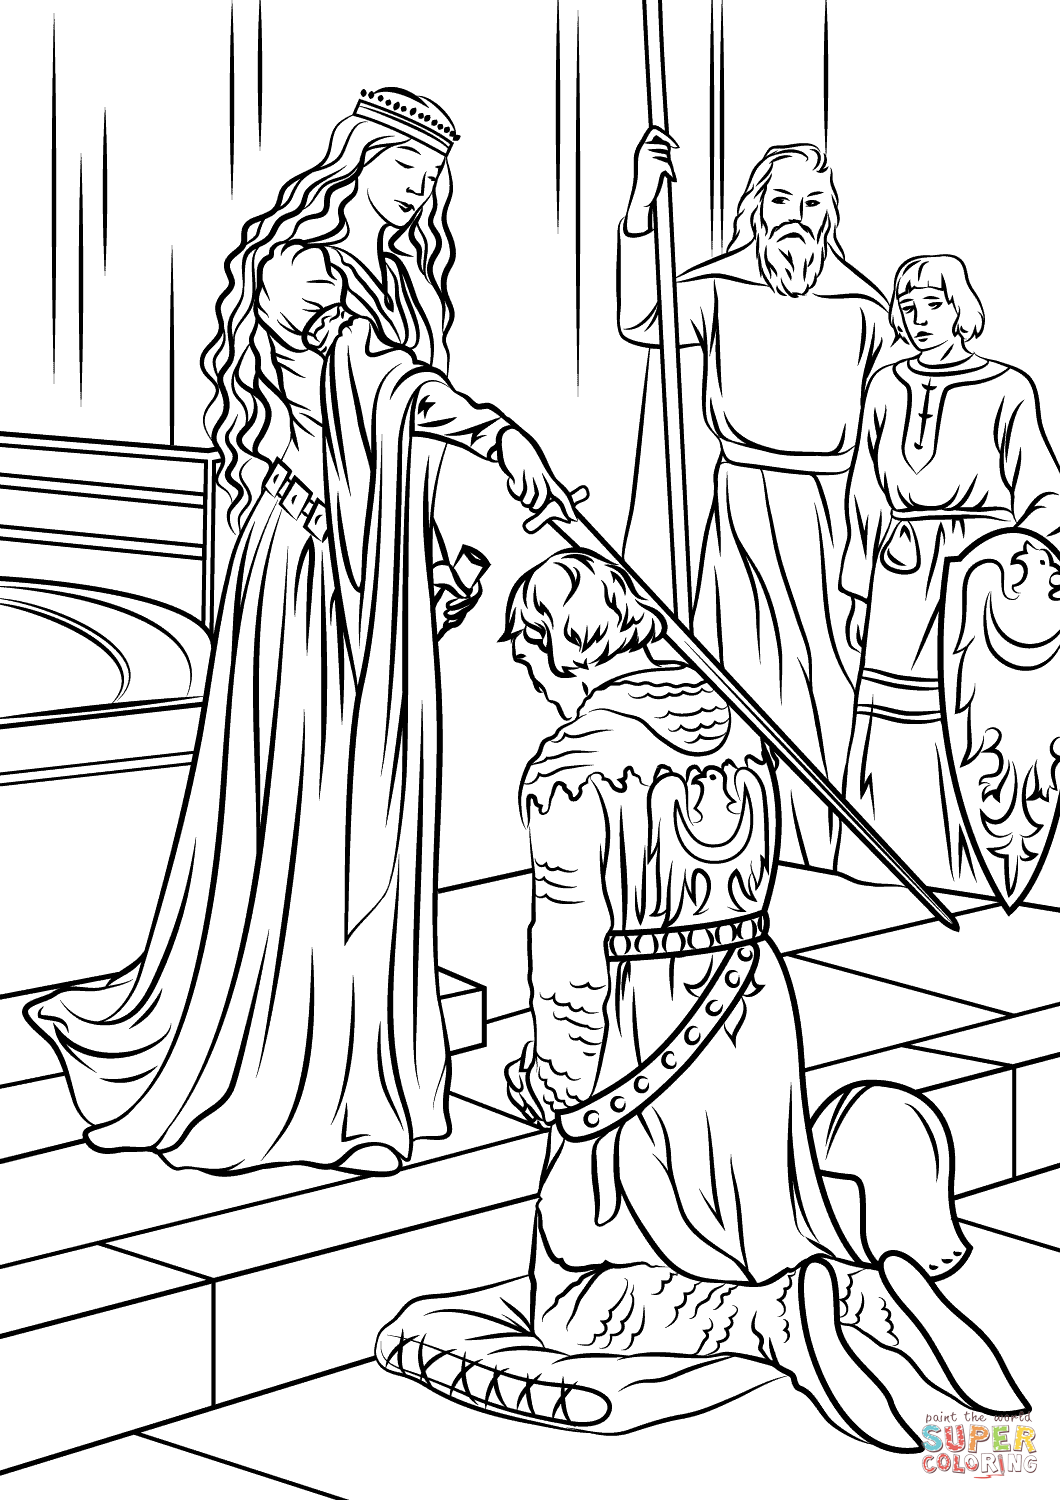 medieval coloring sheets coloring pages about the middle ages medievalistsnet sheets medieval coloring